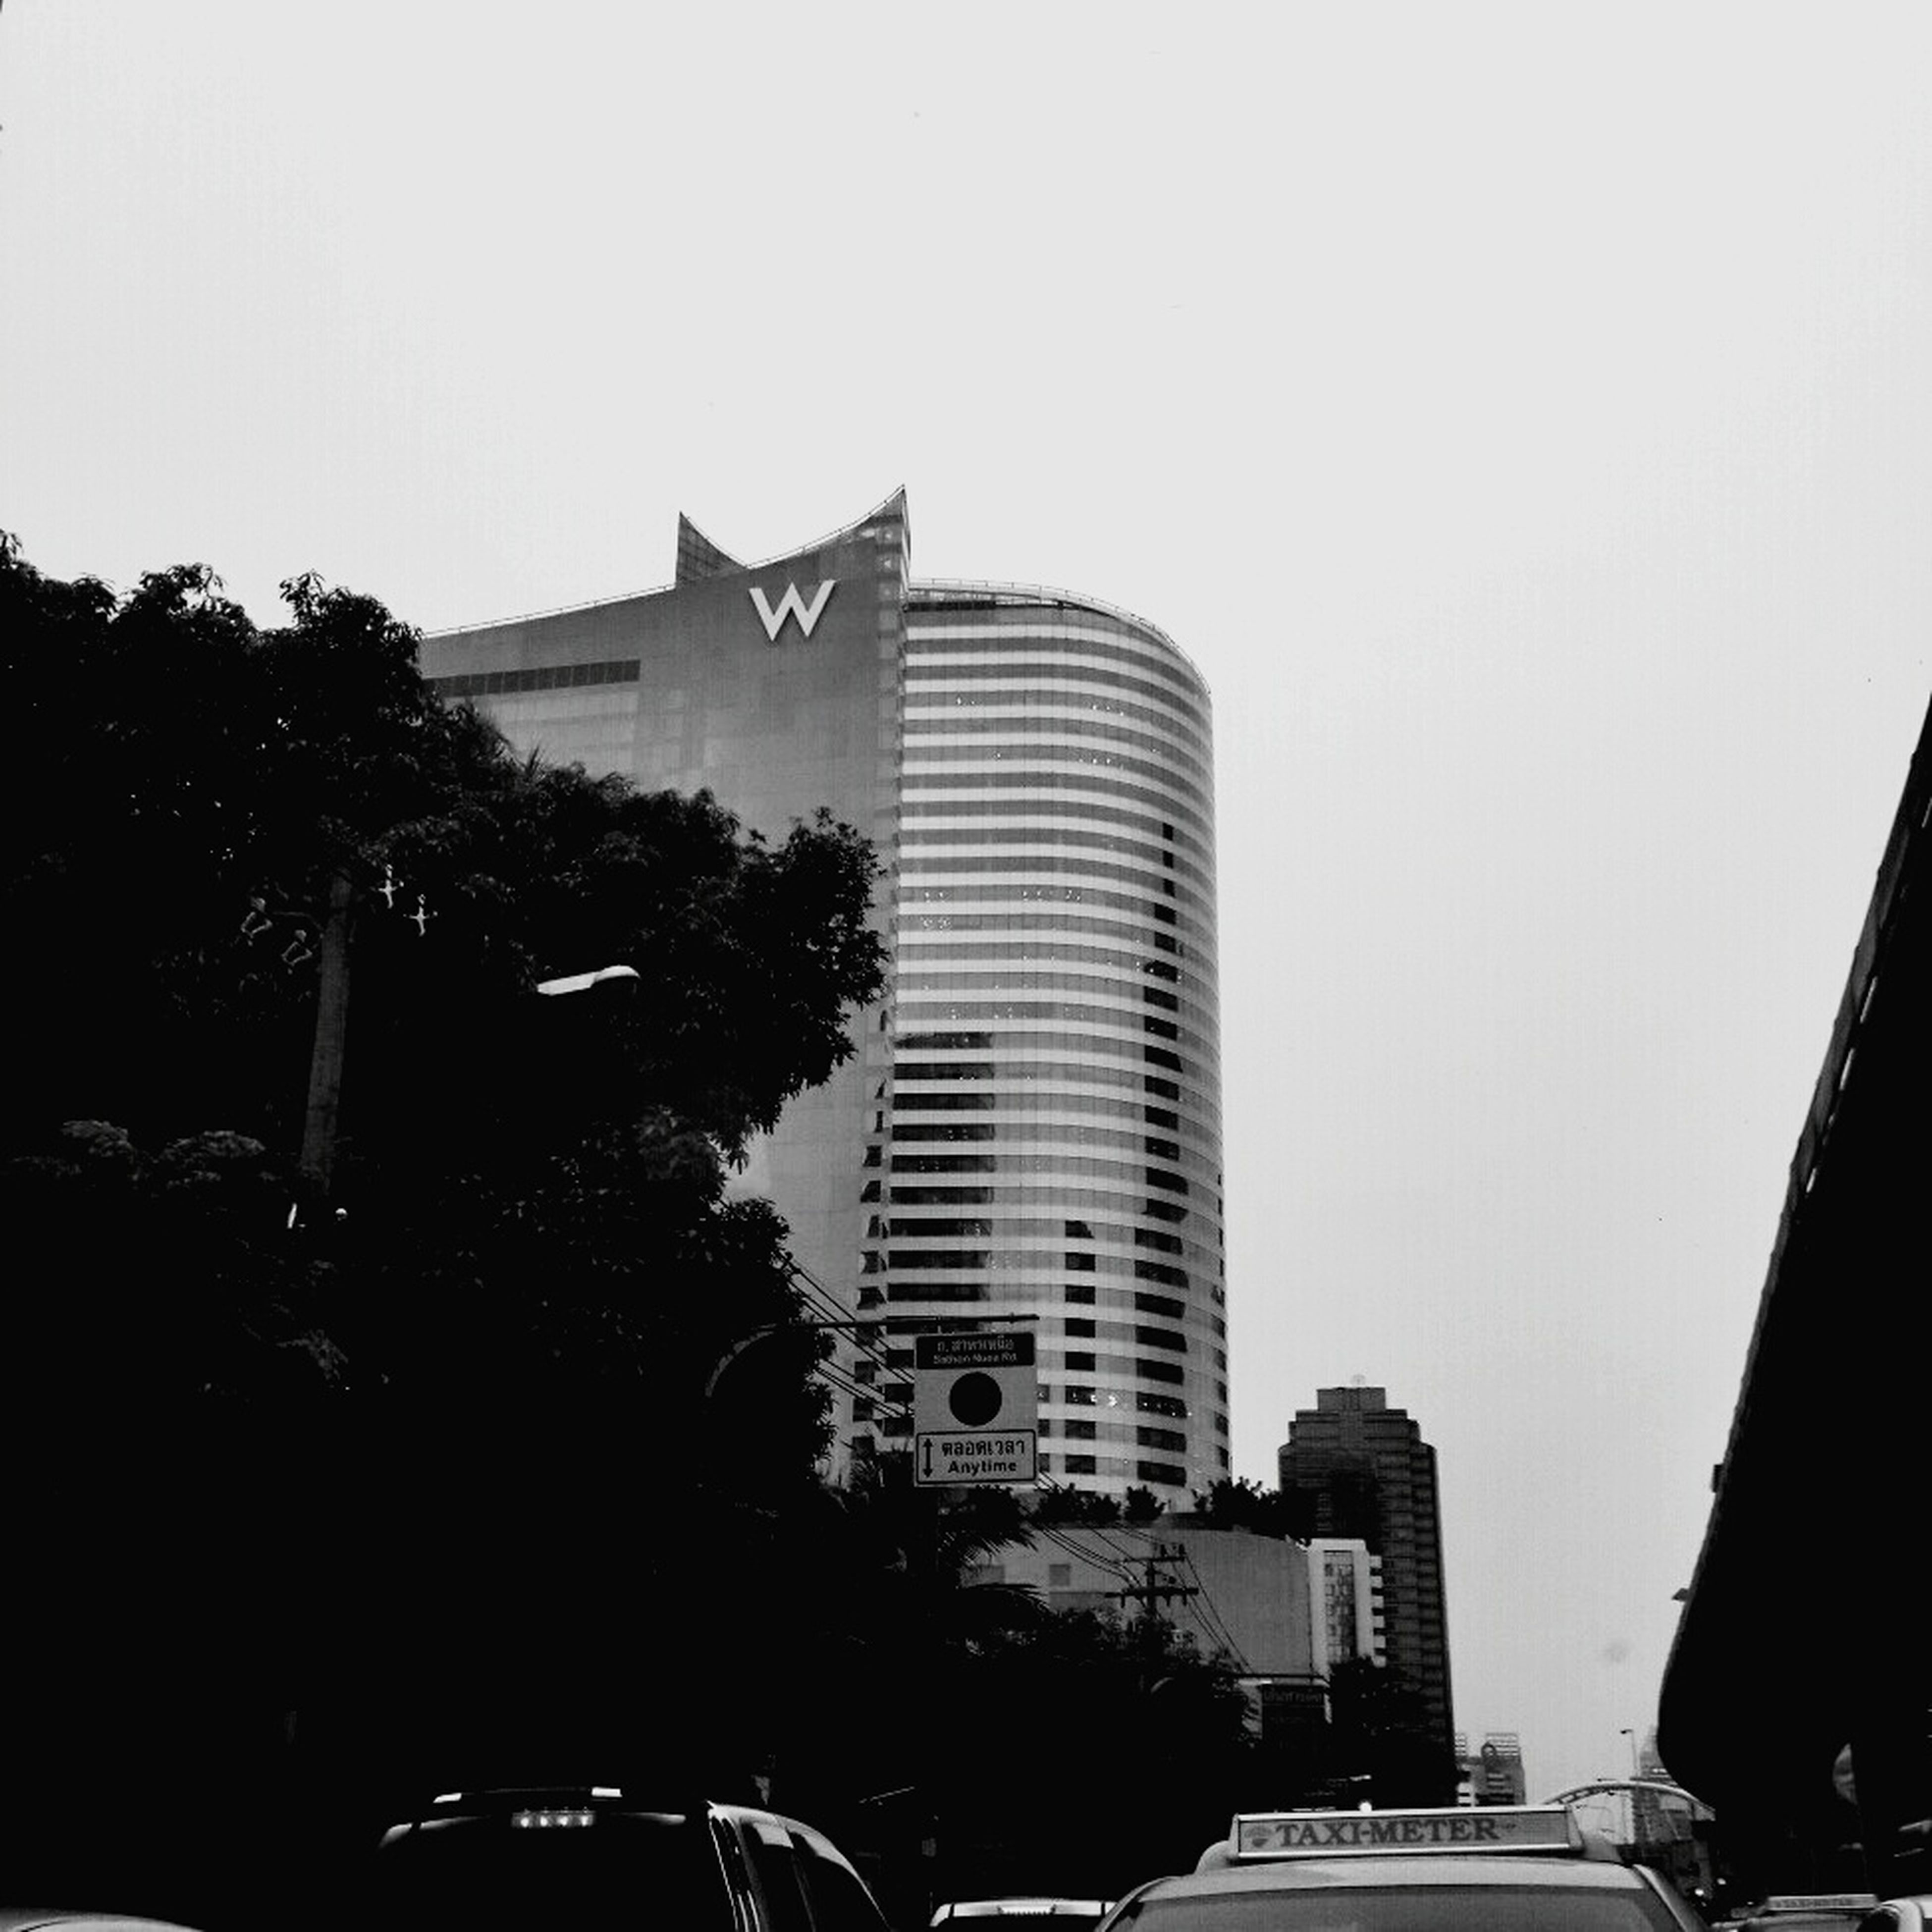 building exterior, architecture, built structure, city, skyscraper, clear sky, tall - high, tower, office building, building, modern, tree, city life, copy space, residential building, low angle view, car, cityscape, day, residential structure